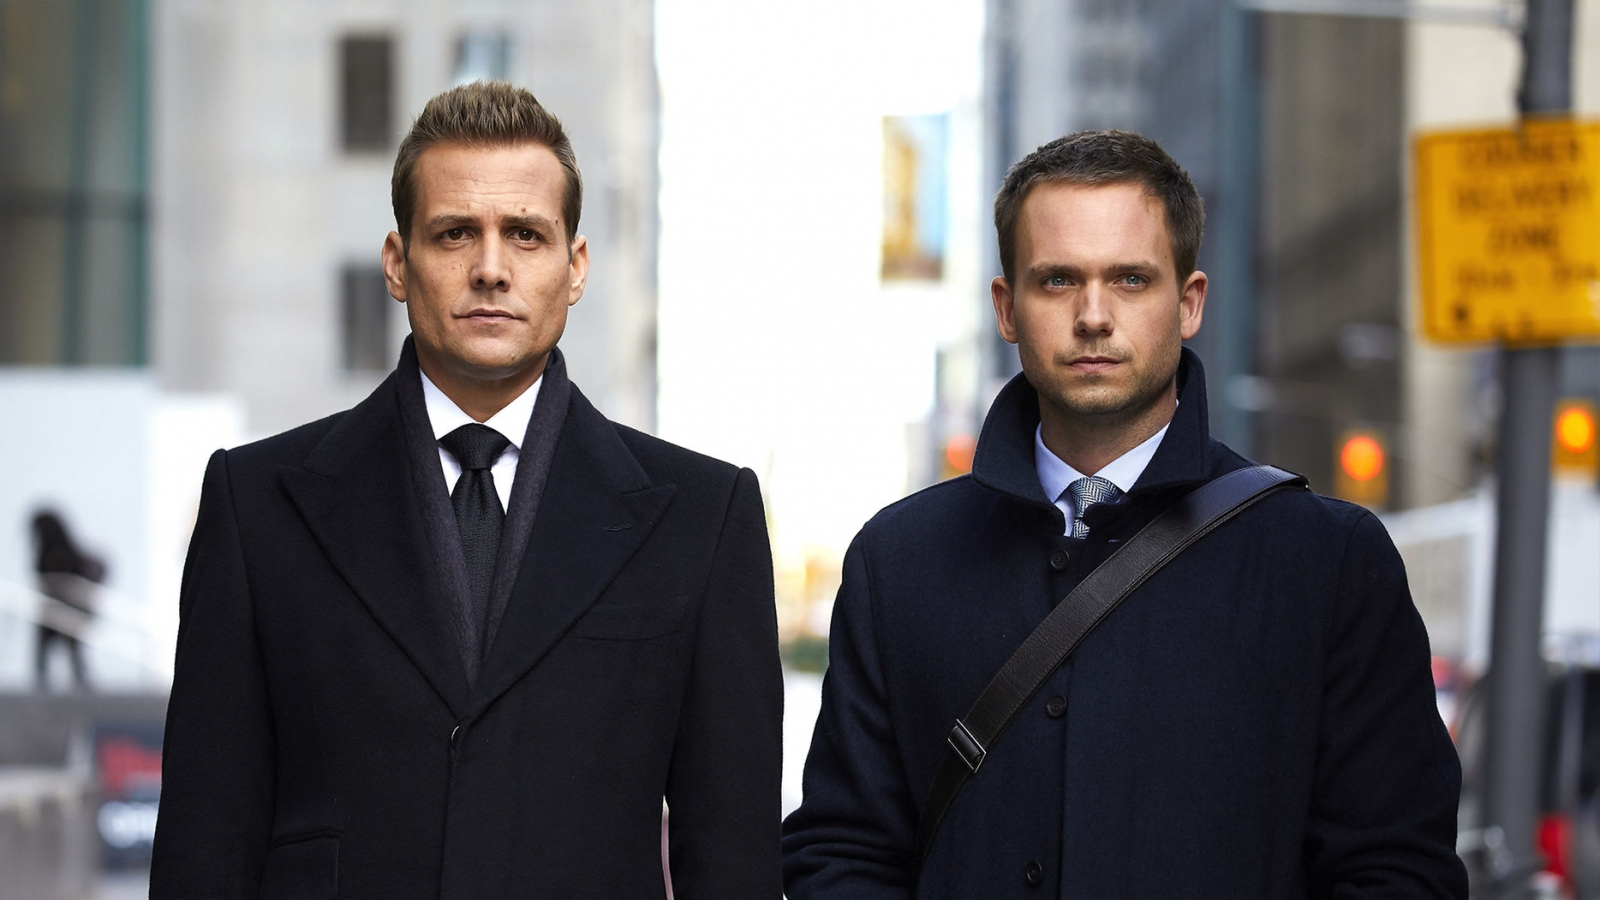 Suits Season 8 The popular television series Suits from studios Hypnotic and Universal Cable Productions, as well as creator of the project Aaron Korsh, shows in its plot an intriguing story about the union of two very talented lawyers of the present Harvey Specter and Mike Ross.